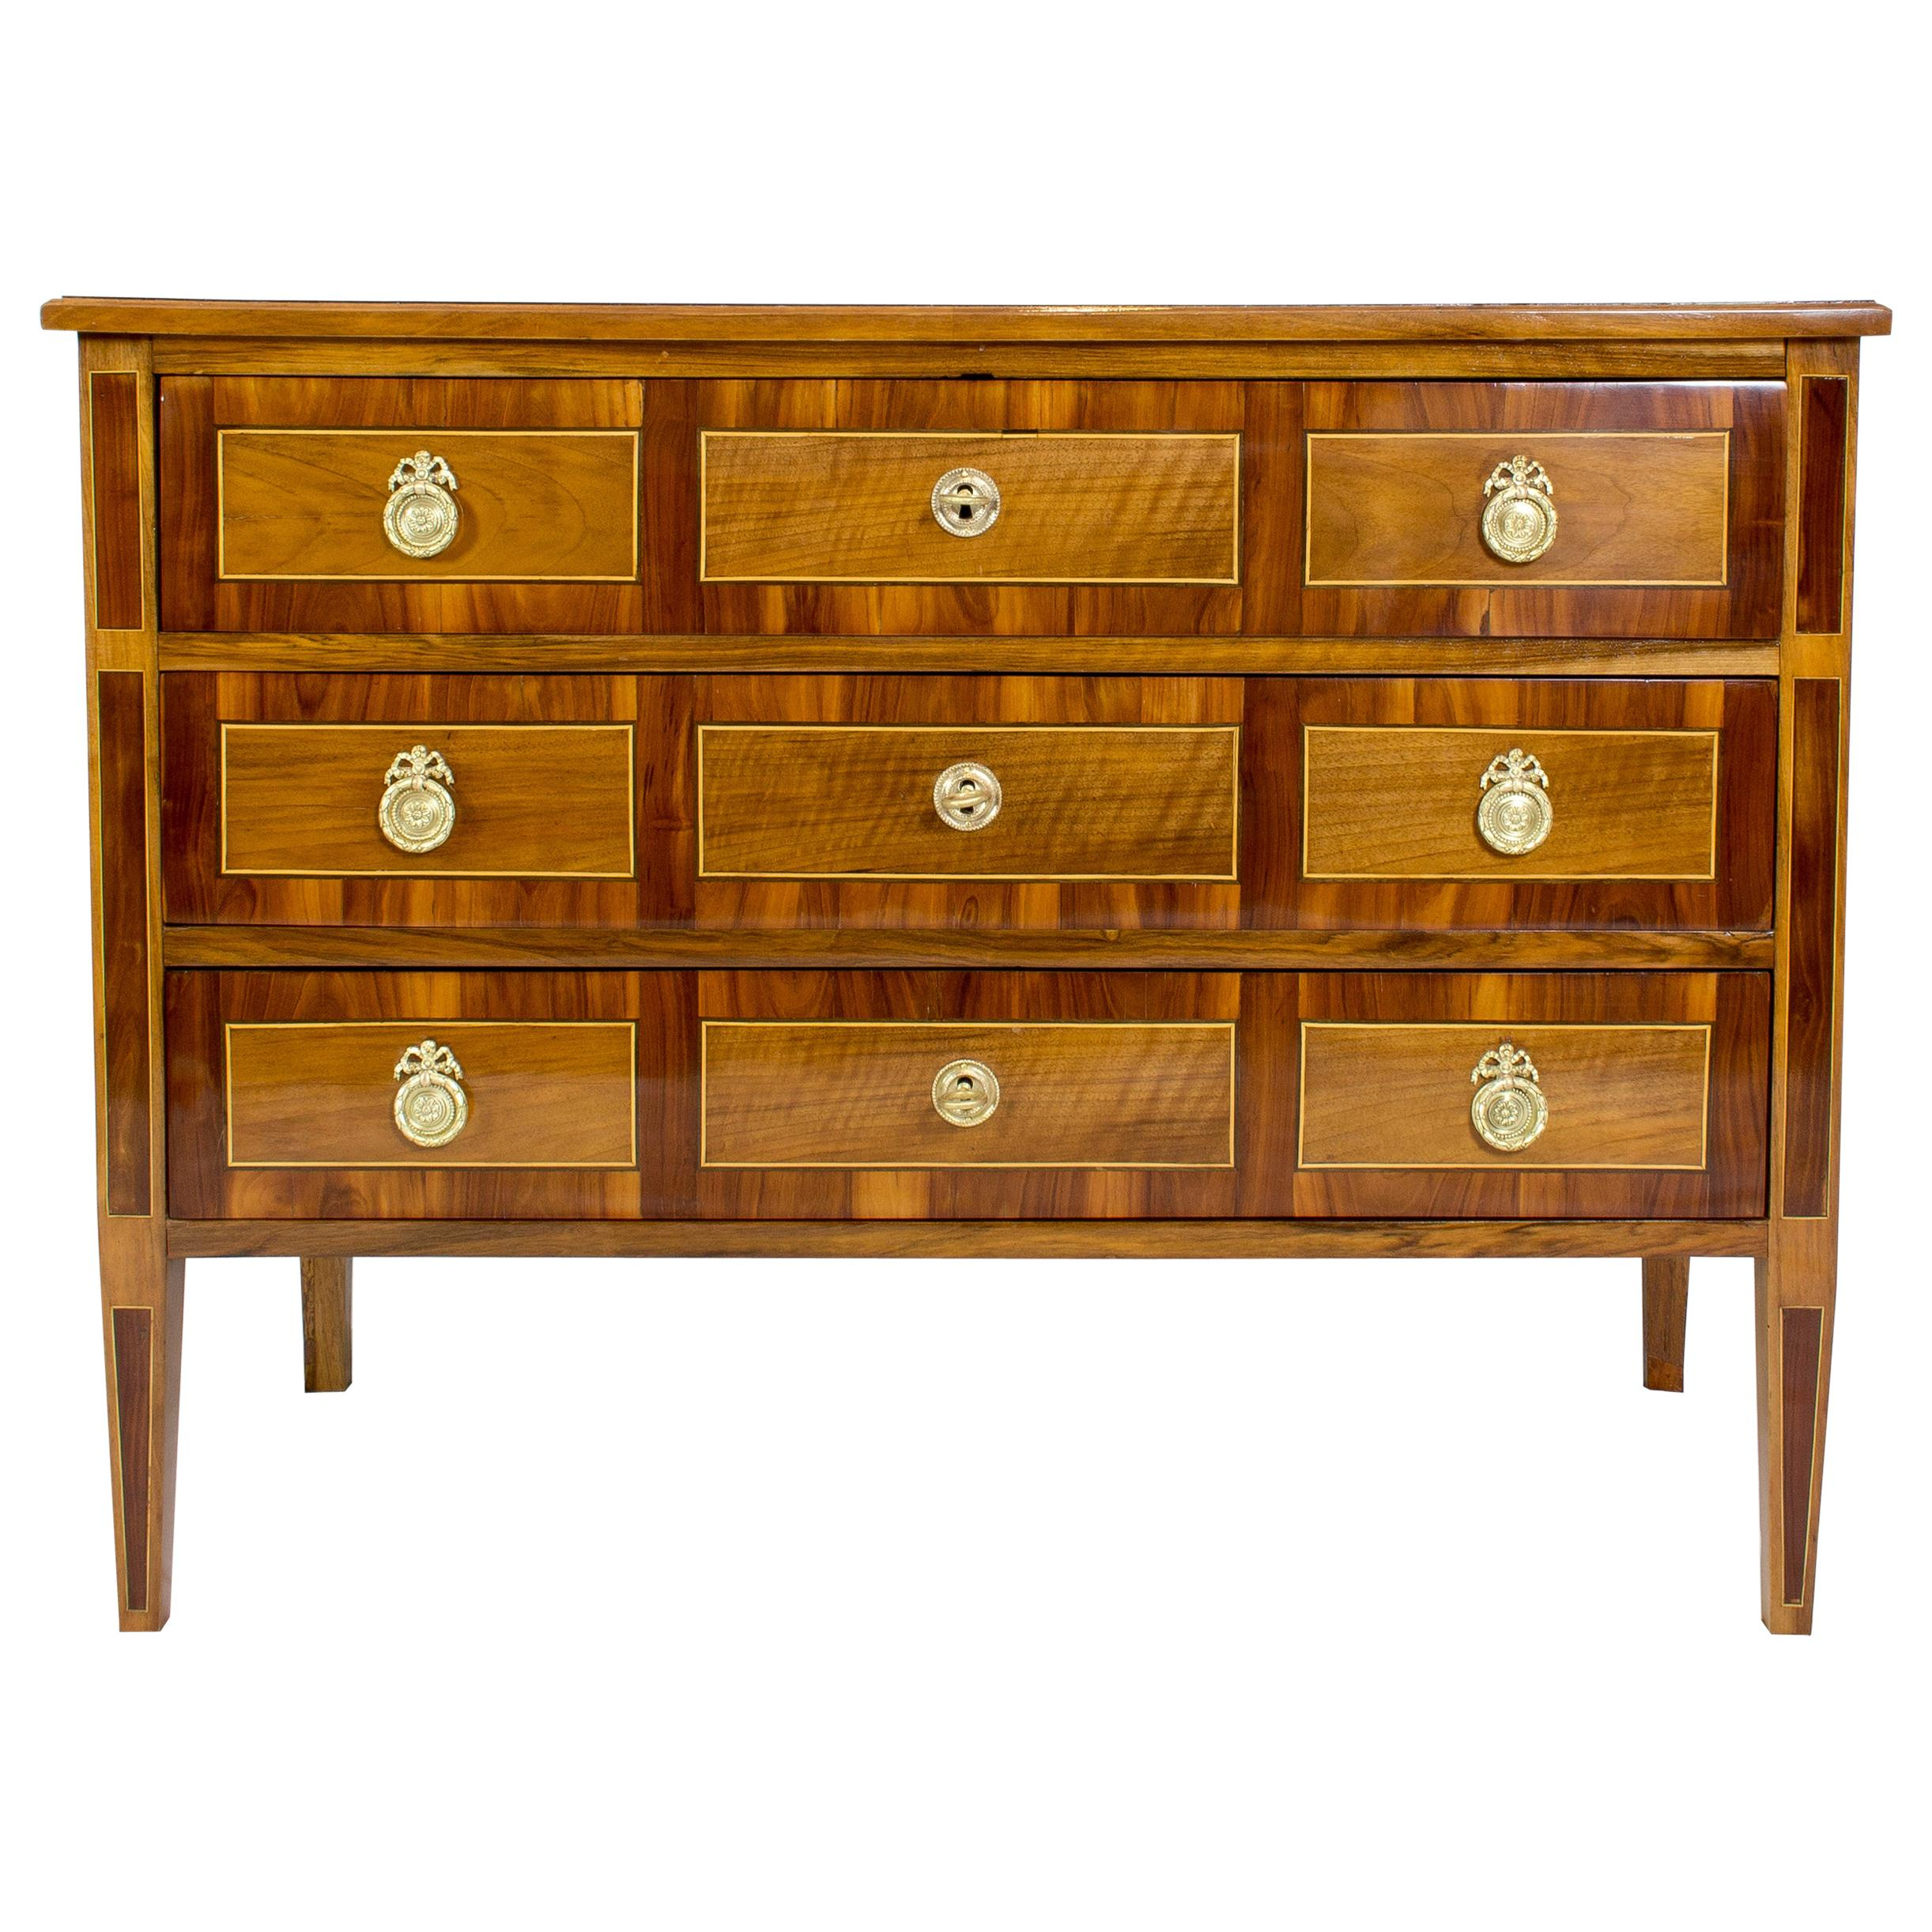 18th Century Louis XVI Marquetry Walnut Commode / Chest of Drawers